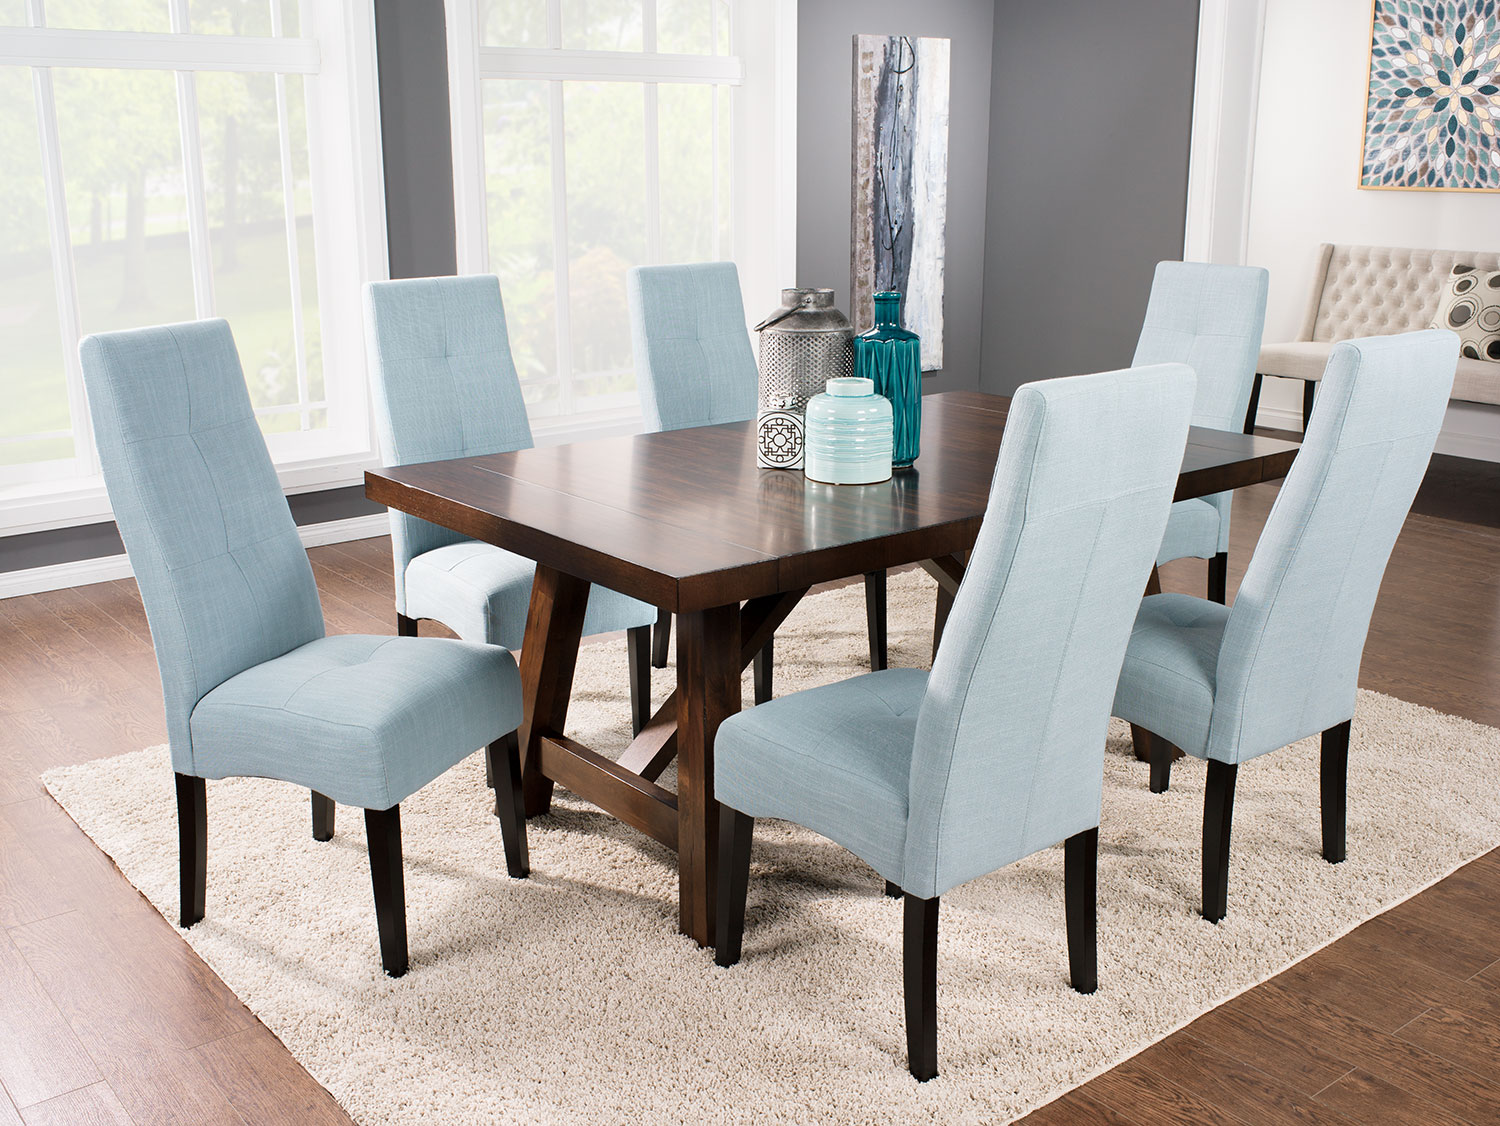 Dining Room Furniture - Adara 7-Piece Dining Package with Sadie Chairs